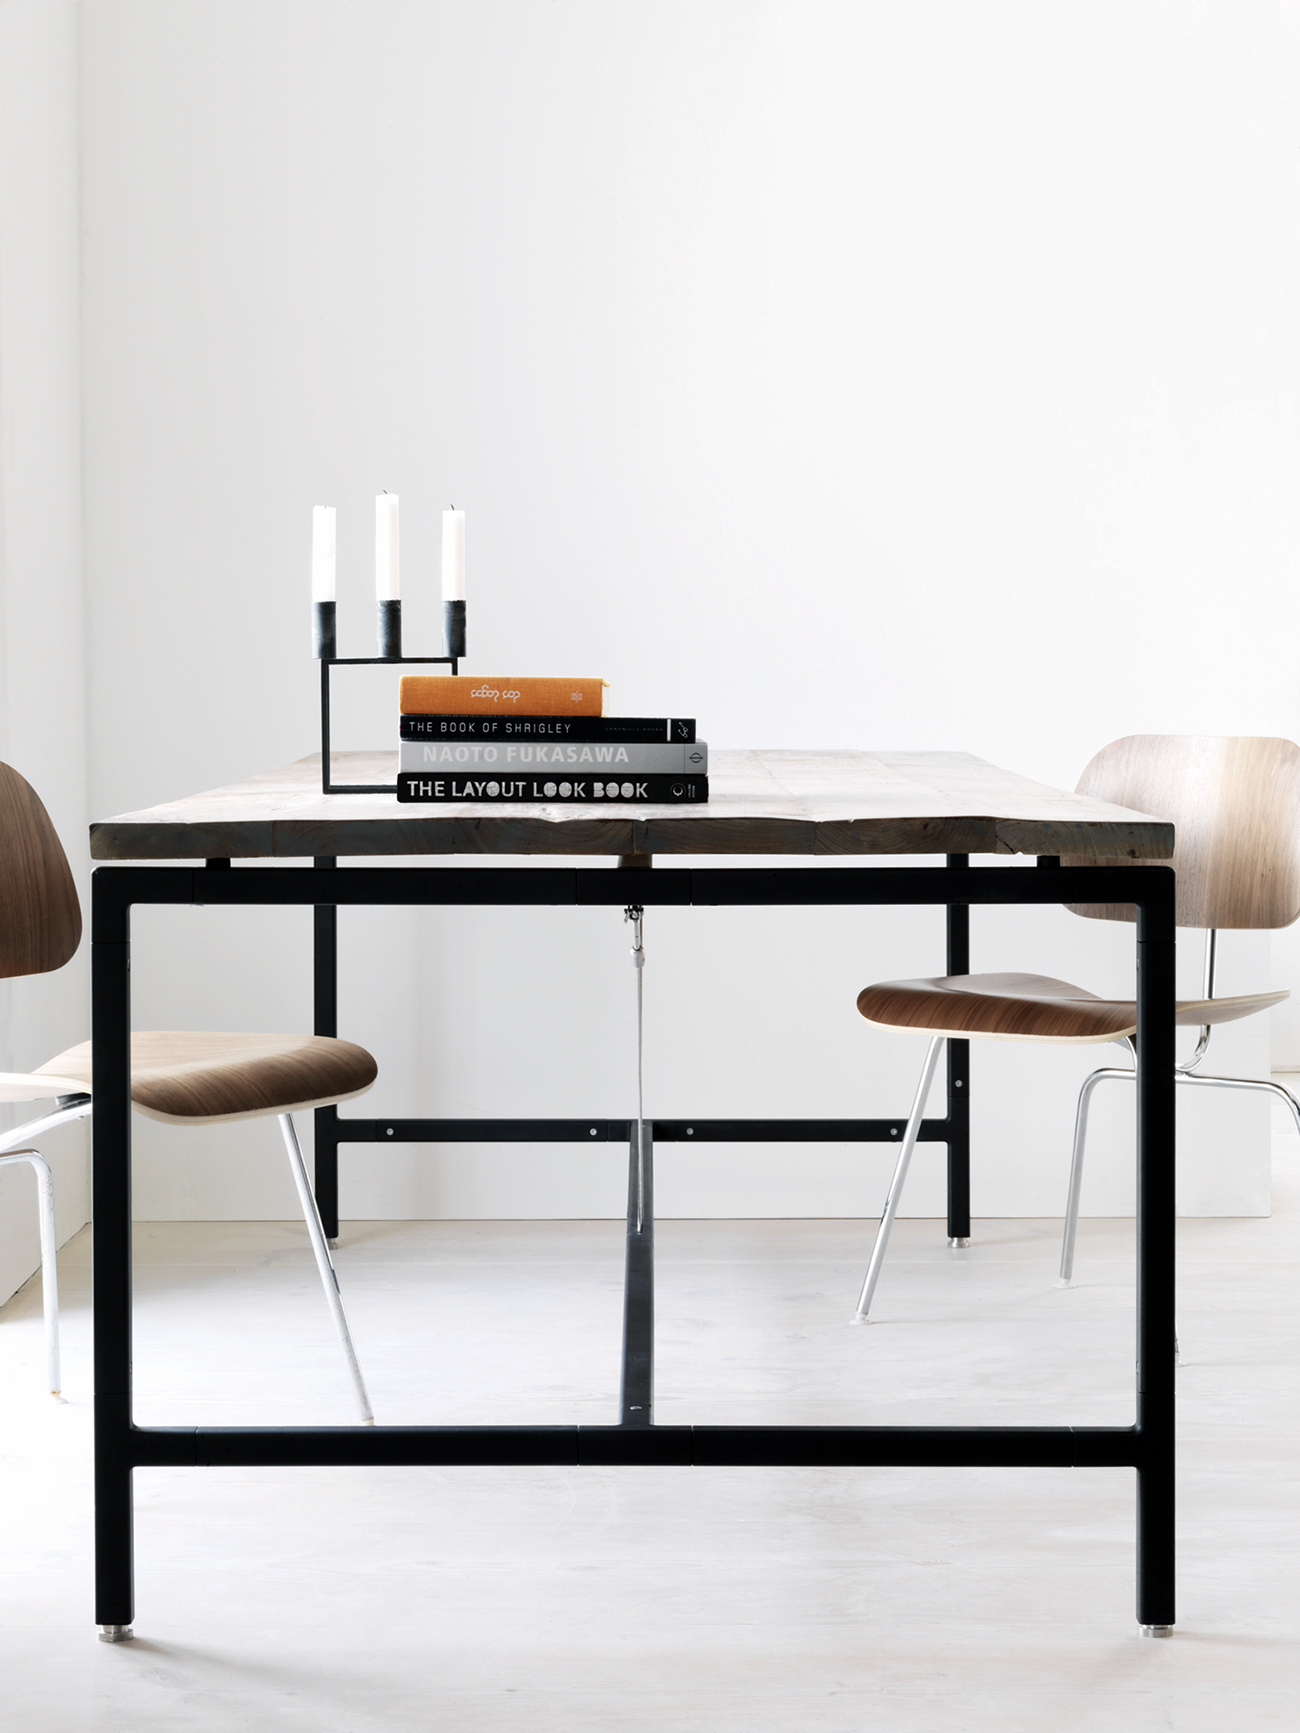 DesignApplause | Vipp table.